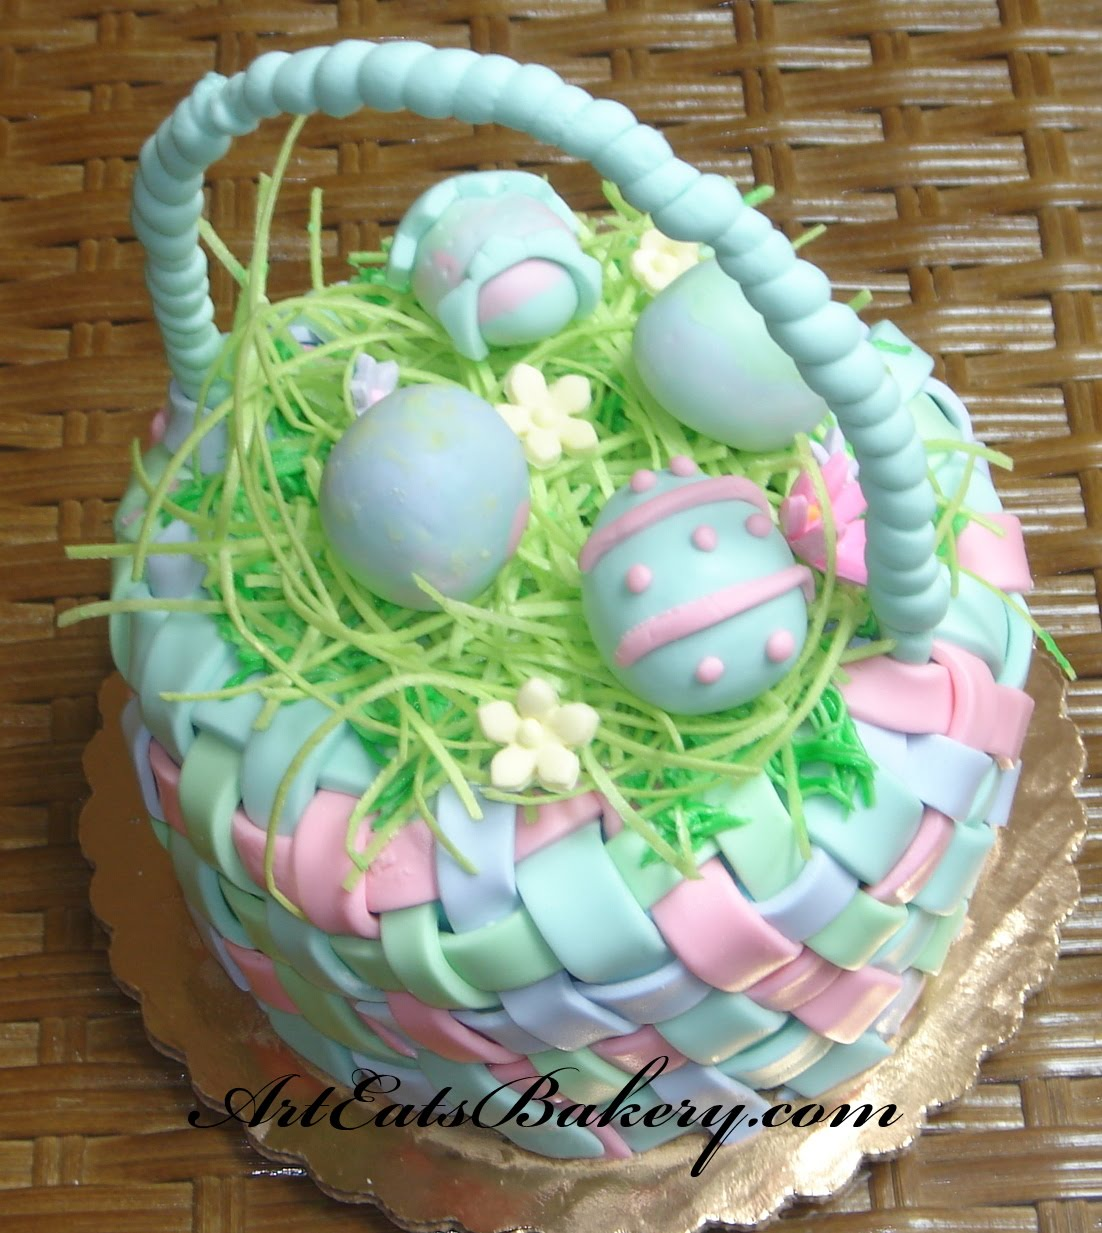 Fondant Easter Cakes By Art Eats Bakery